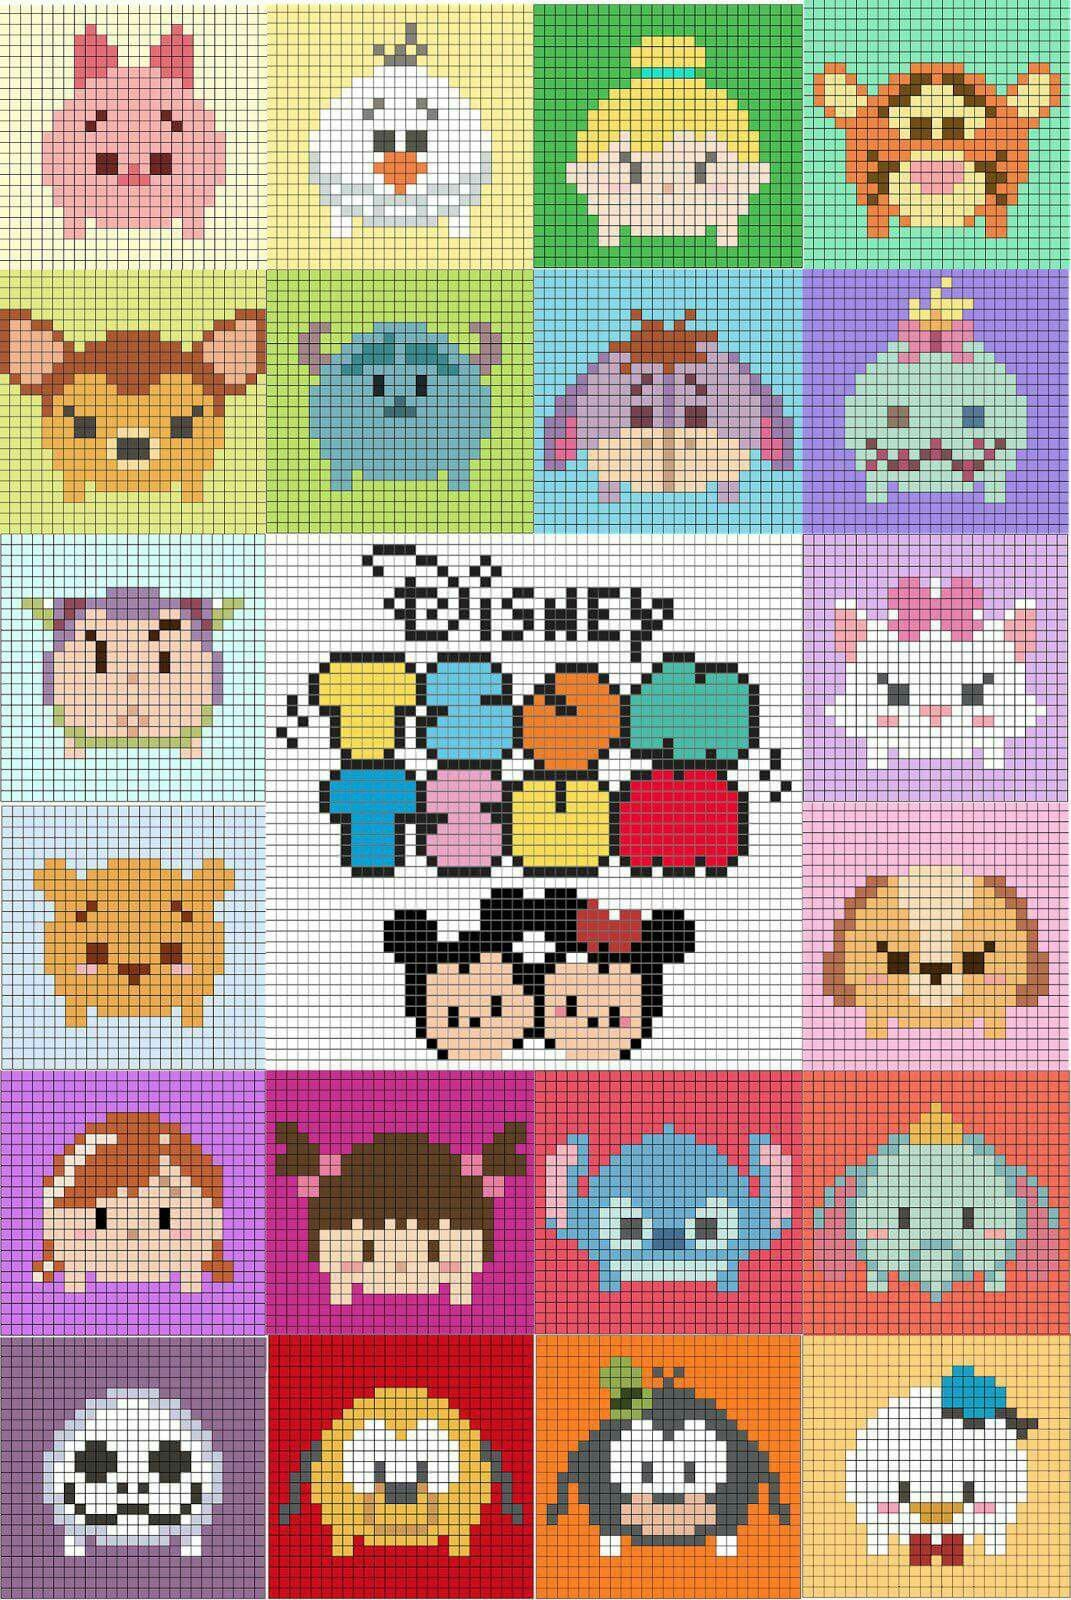 Disney cross stitch pinterest disney cross stitch voltagebd Gallery